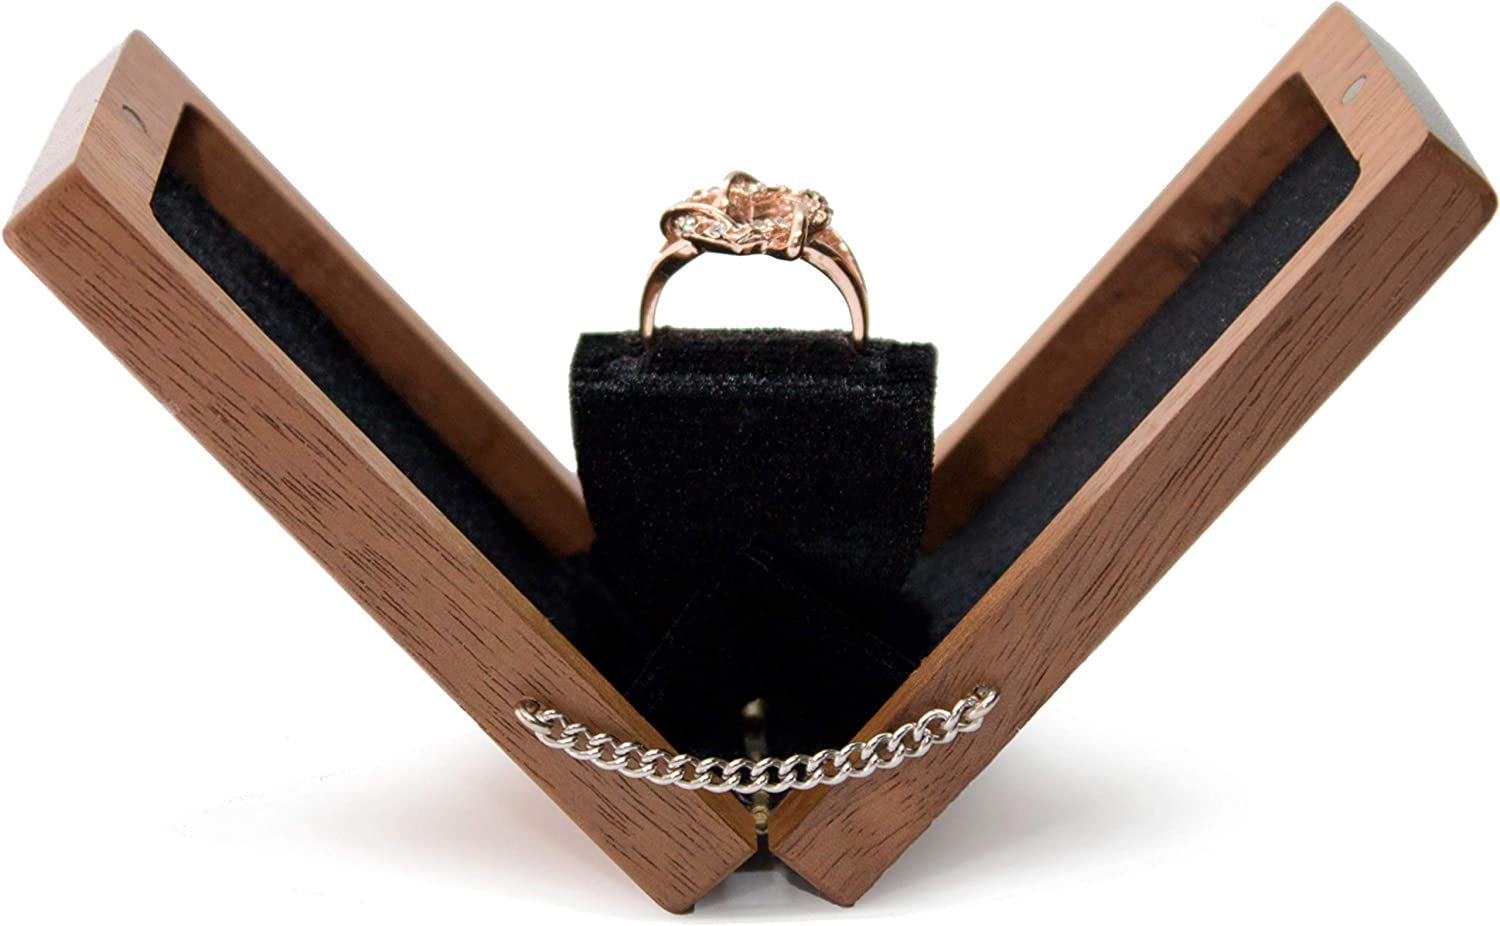 Proposal ring box Ring box Rounded edges Slimline  Oak Engament ring box fits easily into a pocket wedding ring box 82